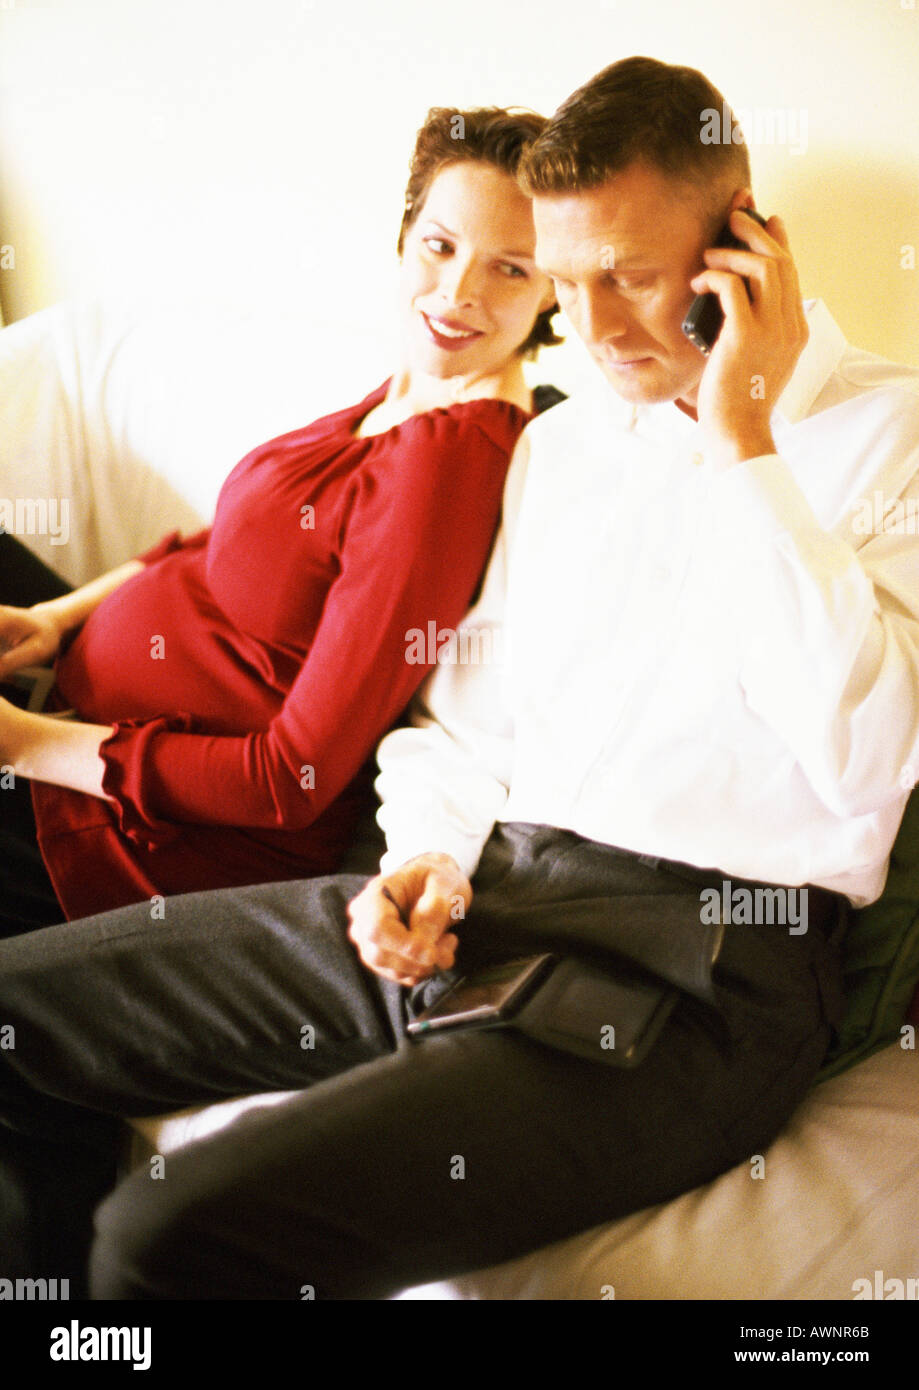 Pregnant woman leaning against man talking on cell phone - Stock Image